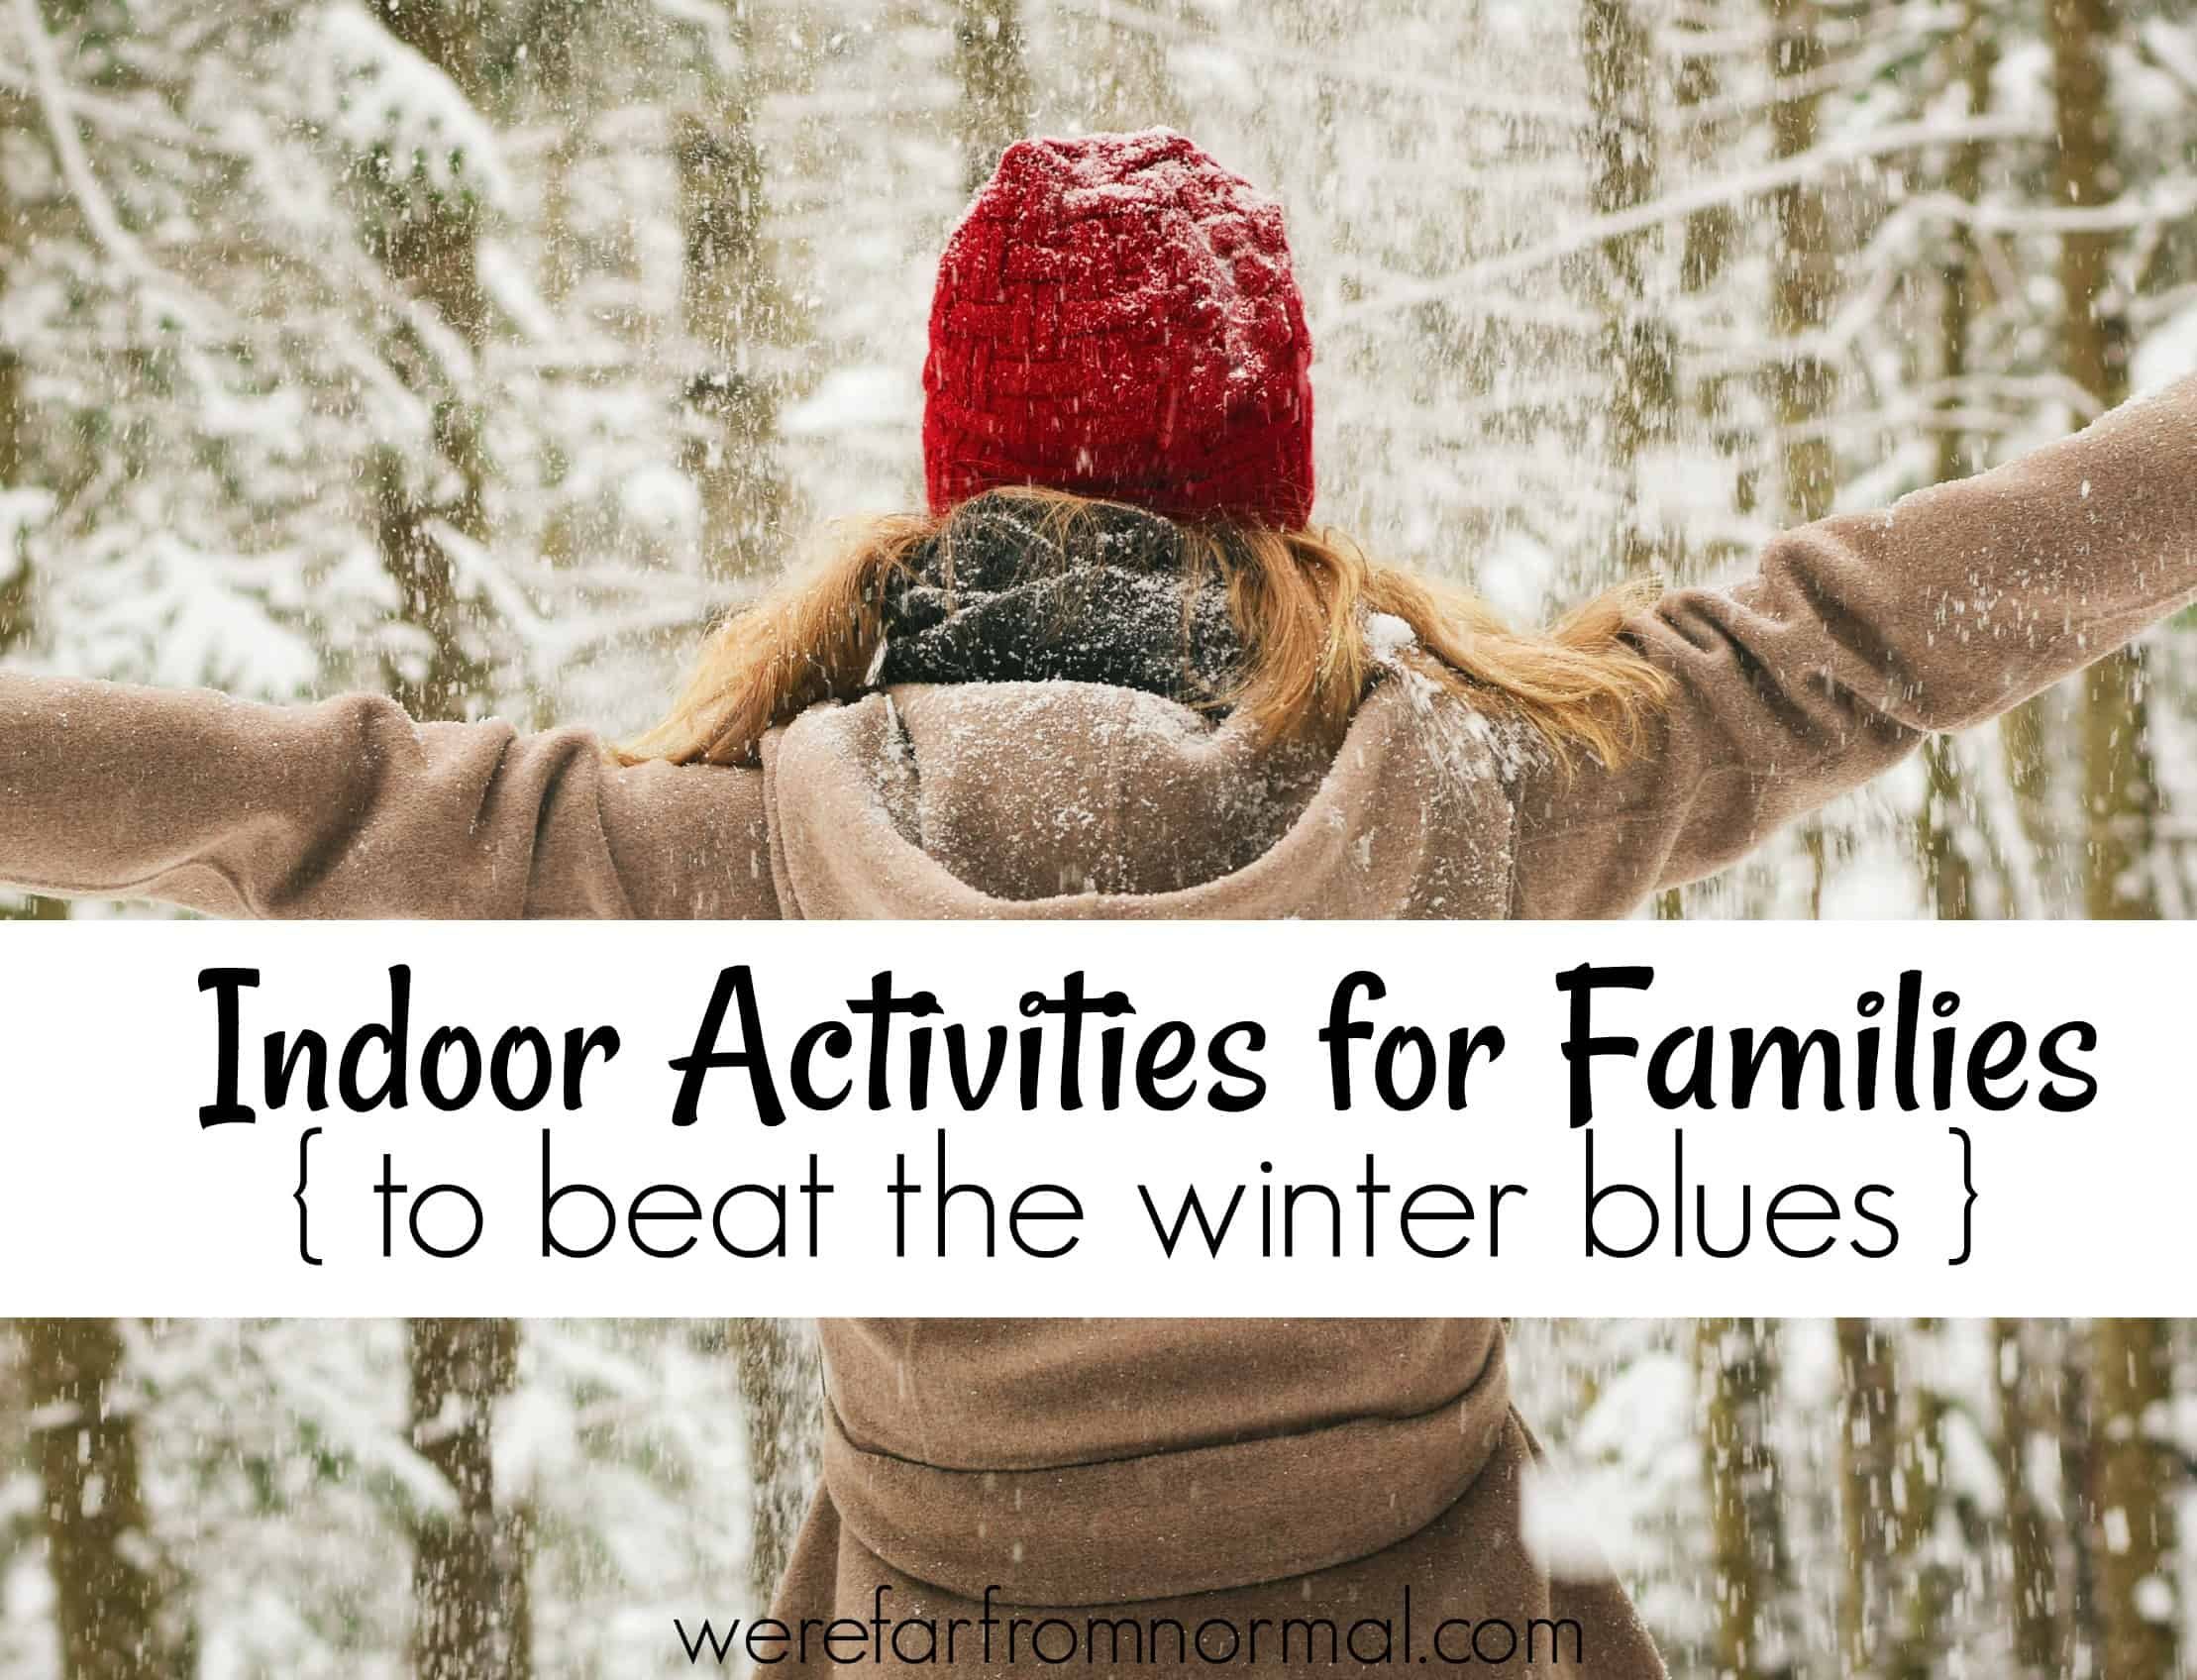 Indoor Activities for Families (to beat the winter blues!)